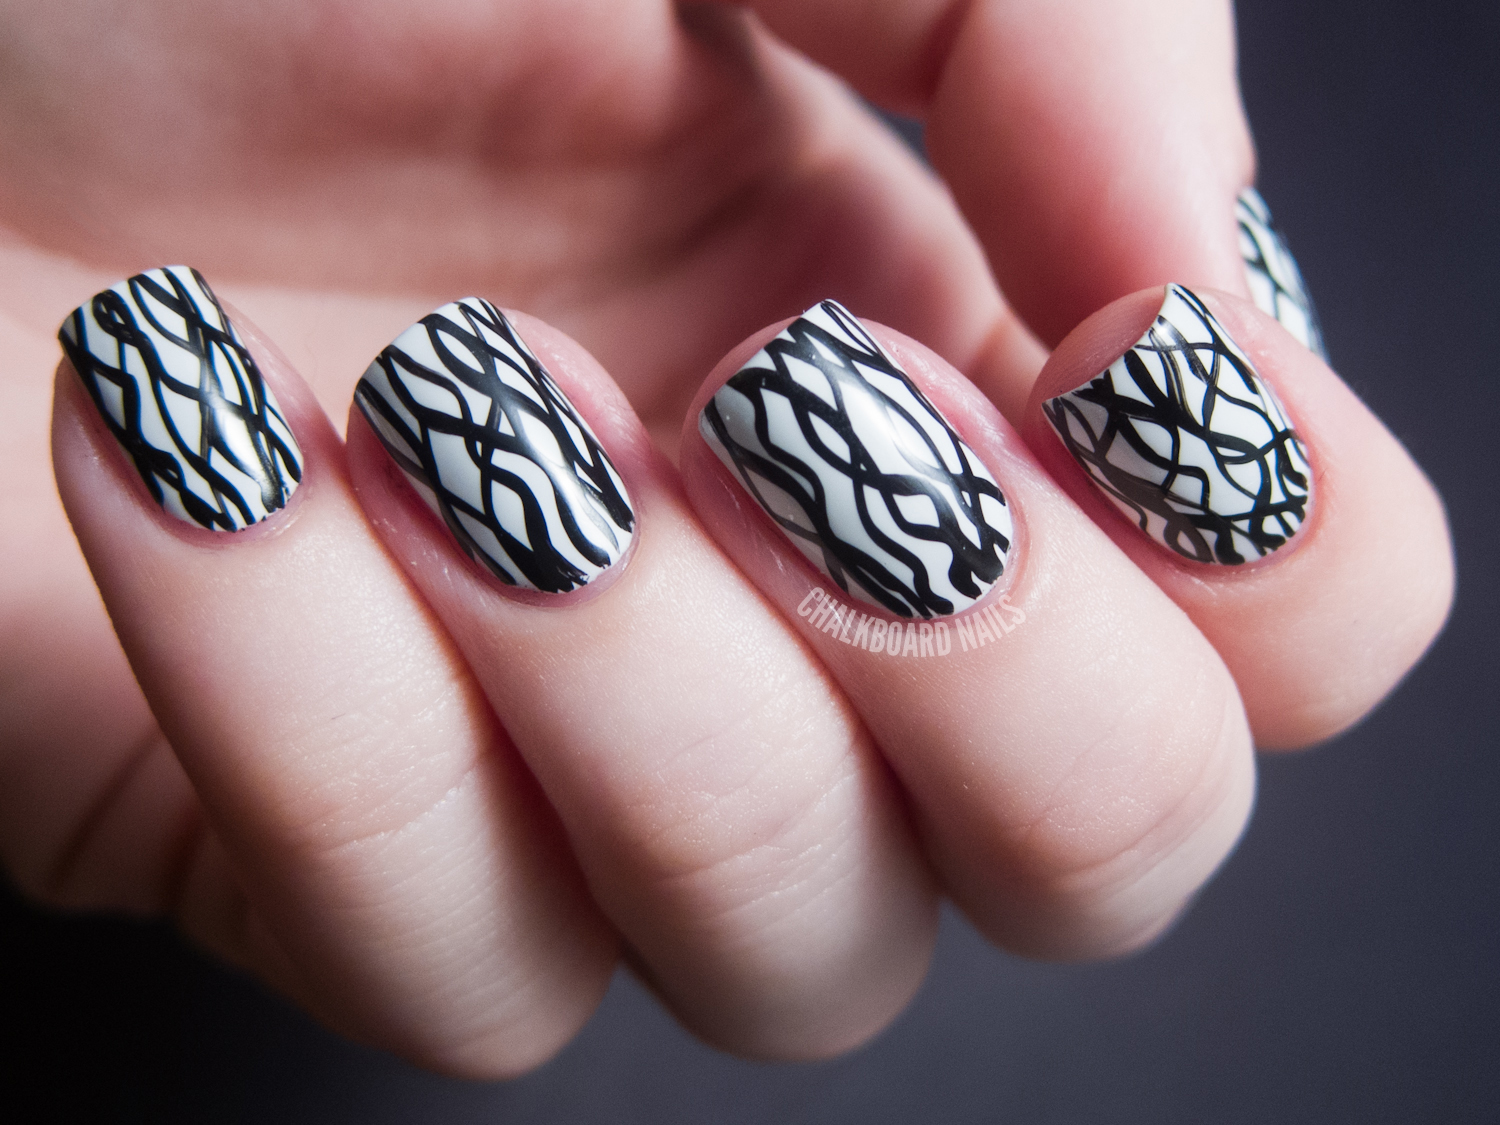 Hipster Flower Acrylic Nails Tumblr | Gardening: Flower and Vegetables